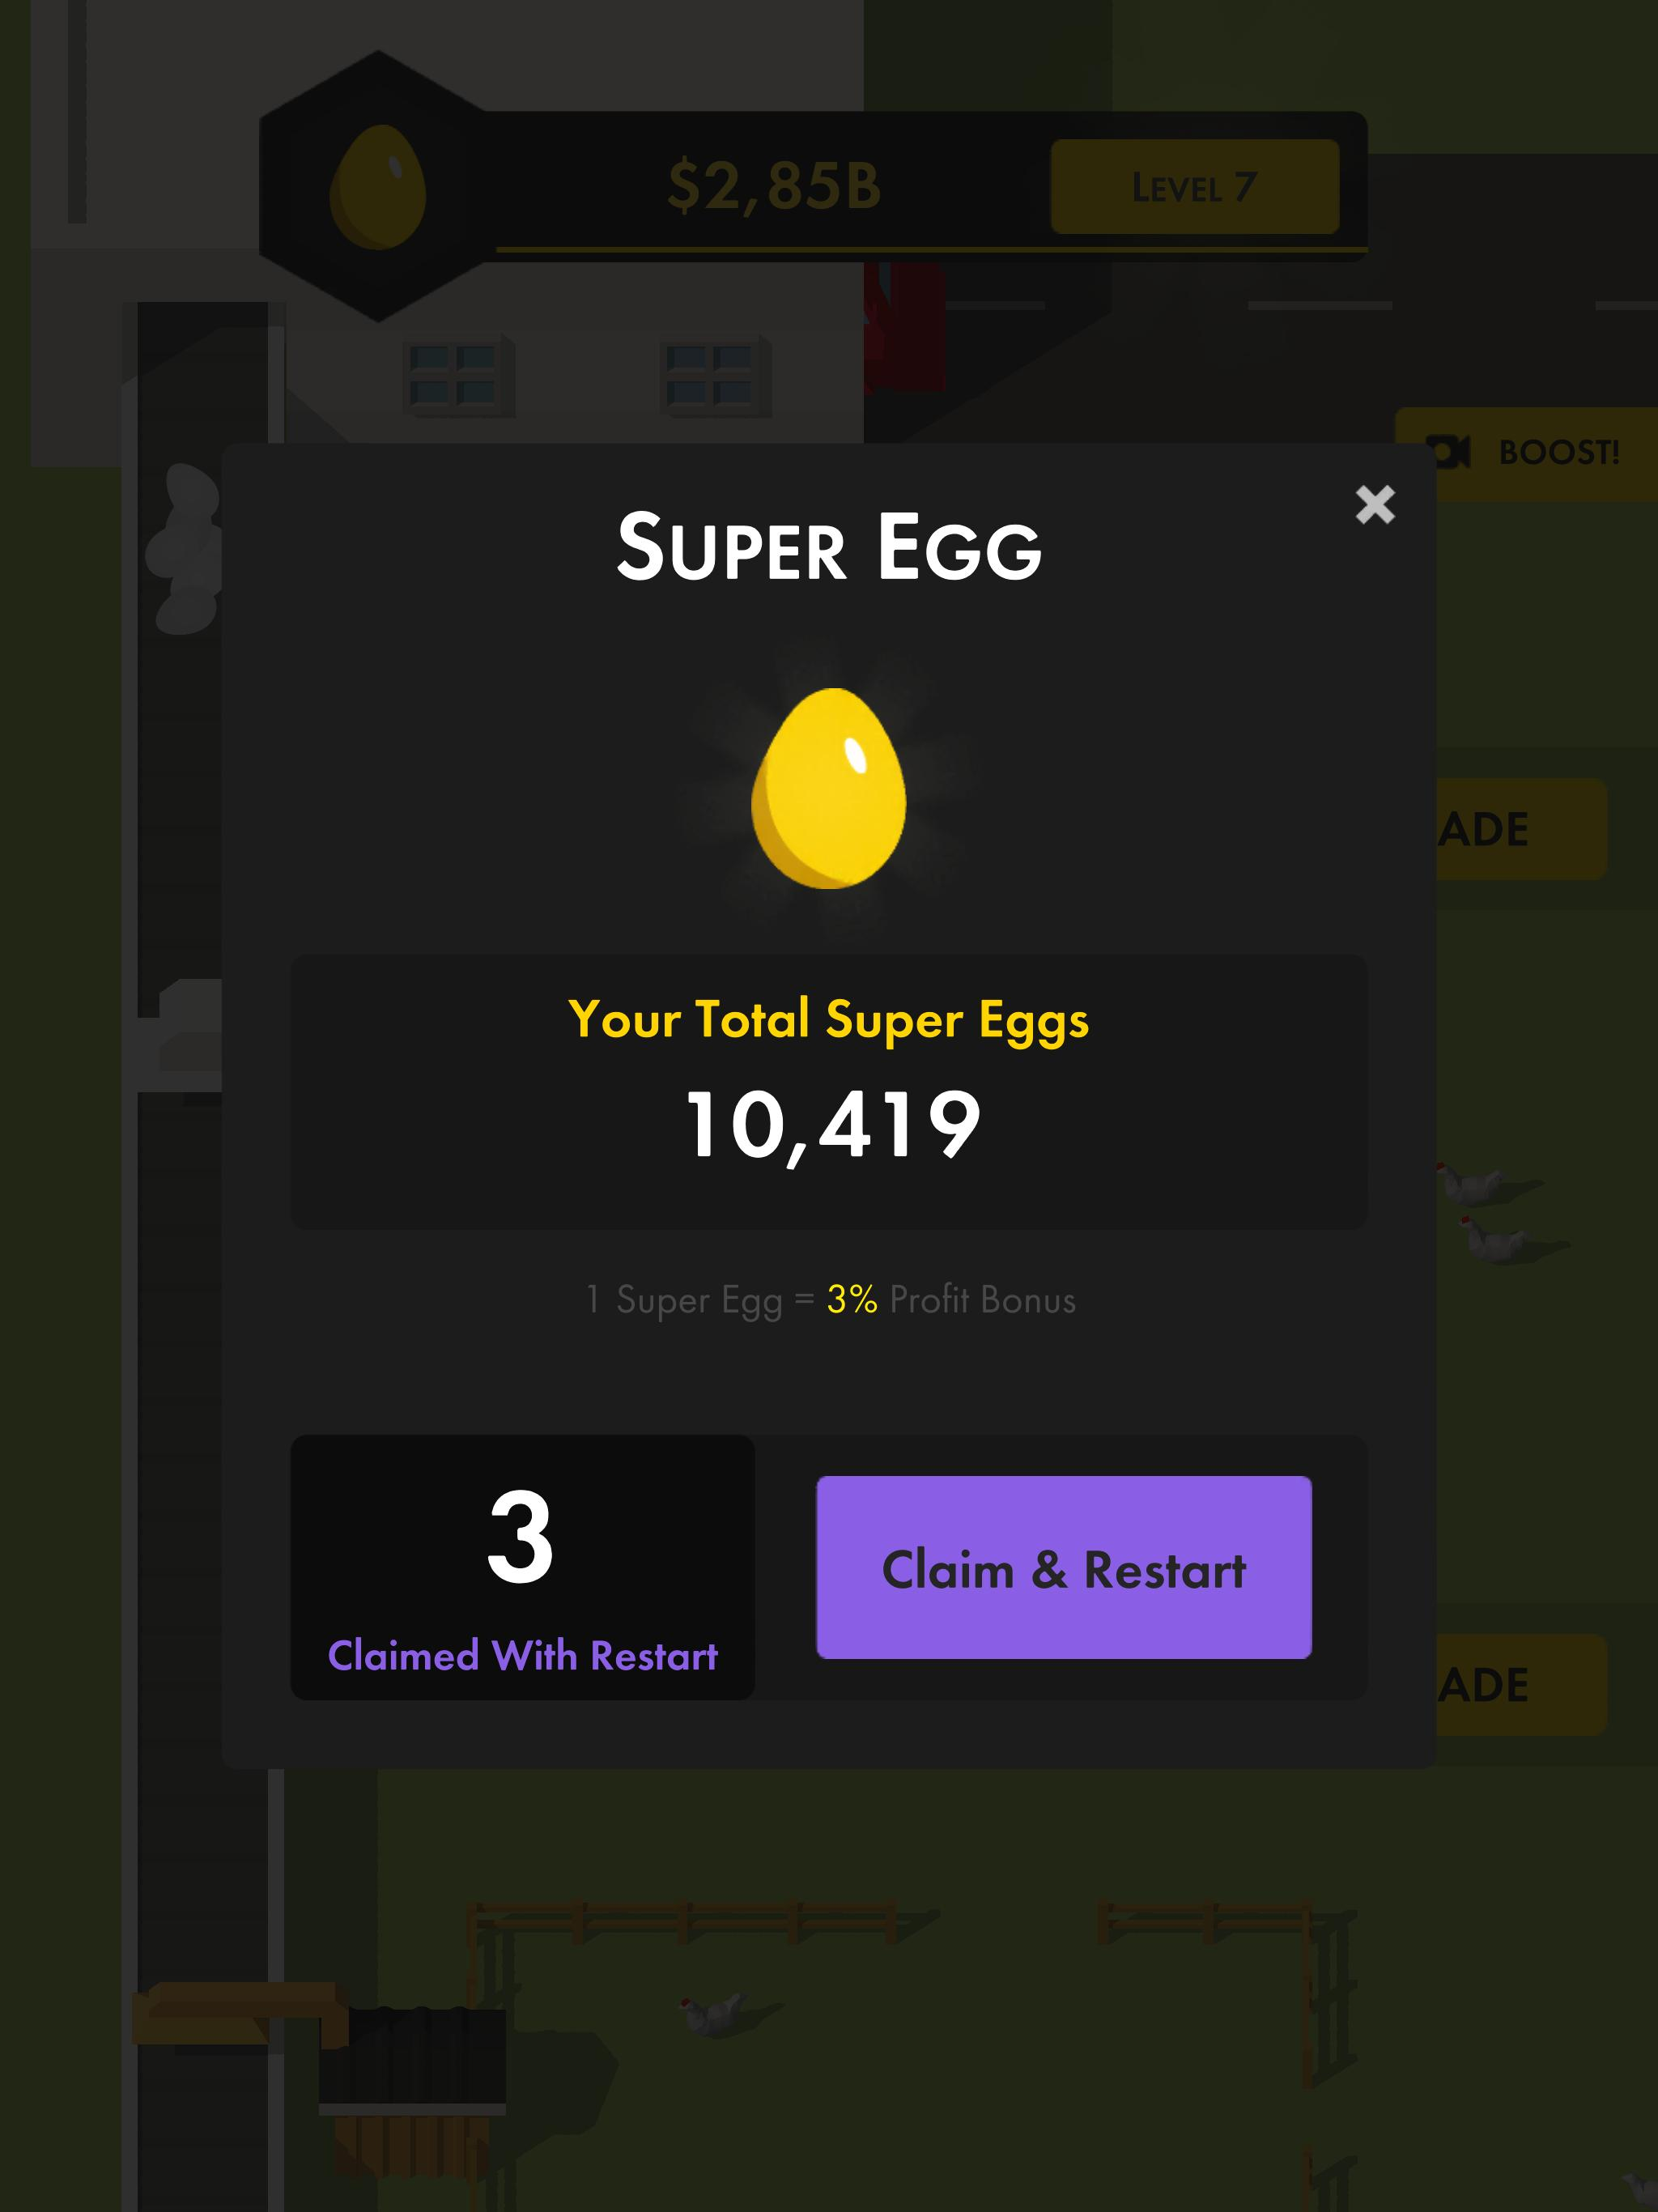 Roblox Egg Farm Simulator How To Get Free Eggs Boost Egg Factory Idle Tycoon For Android Apk Download